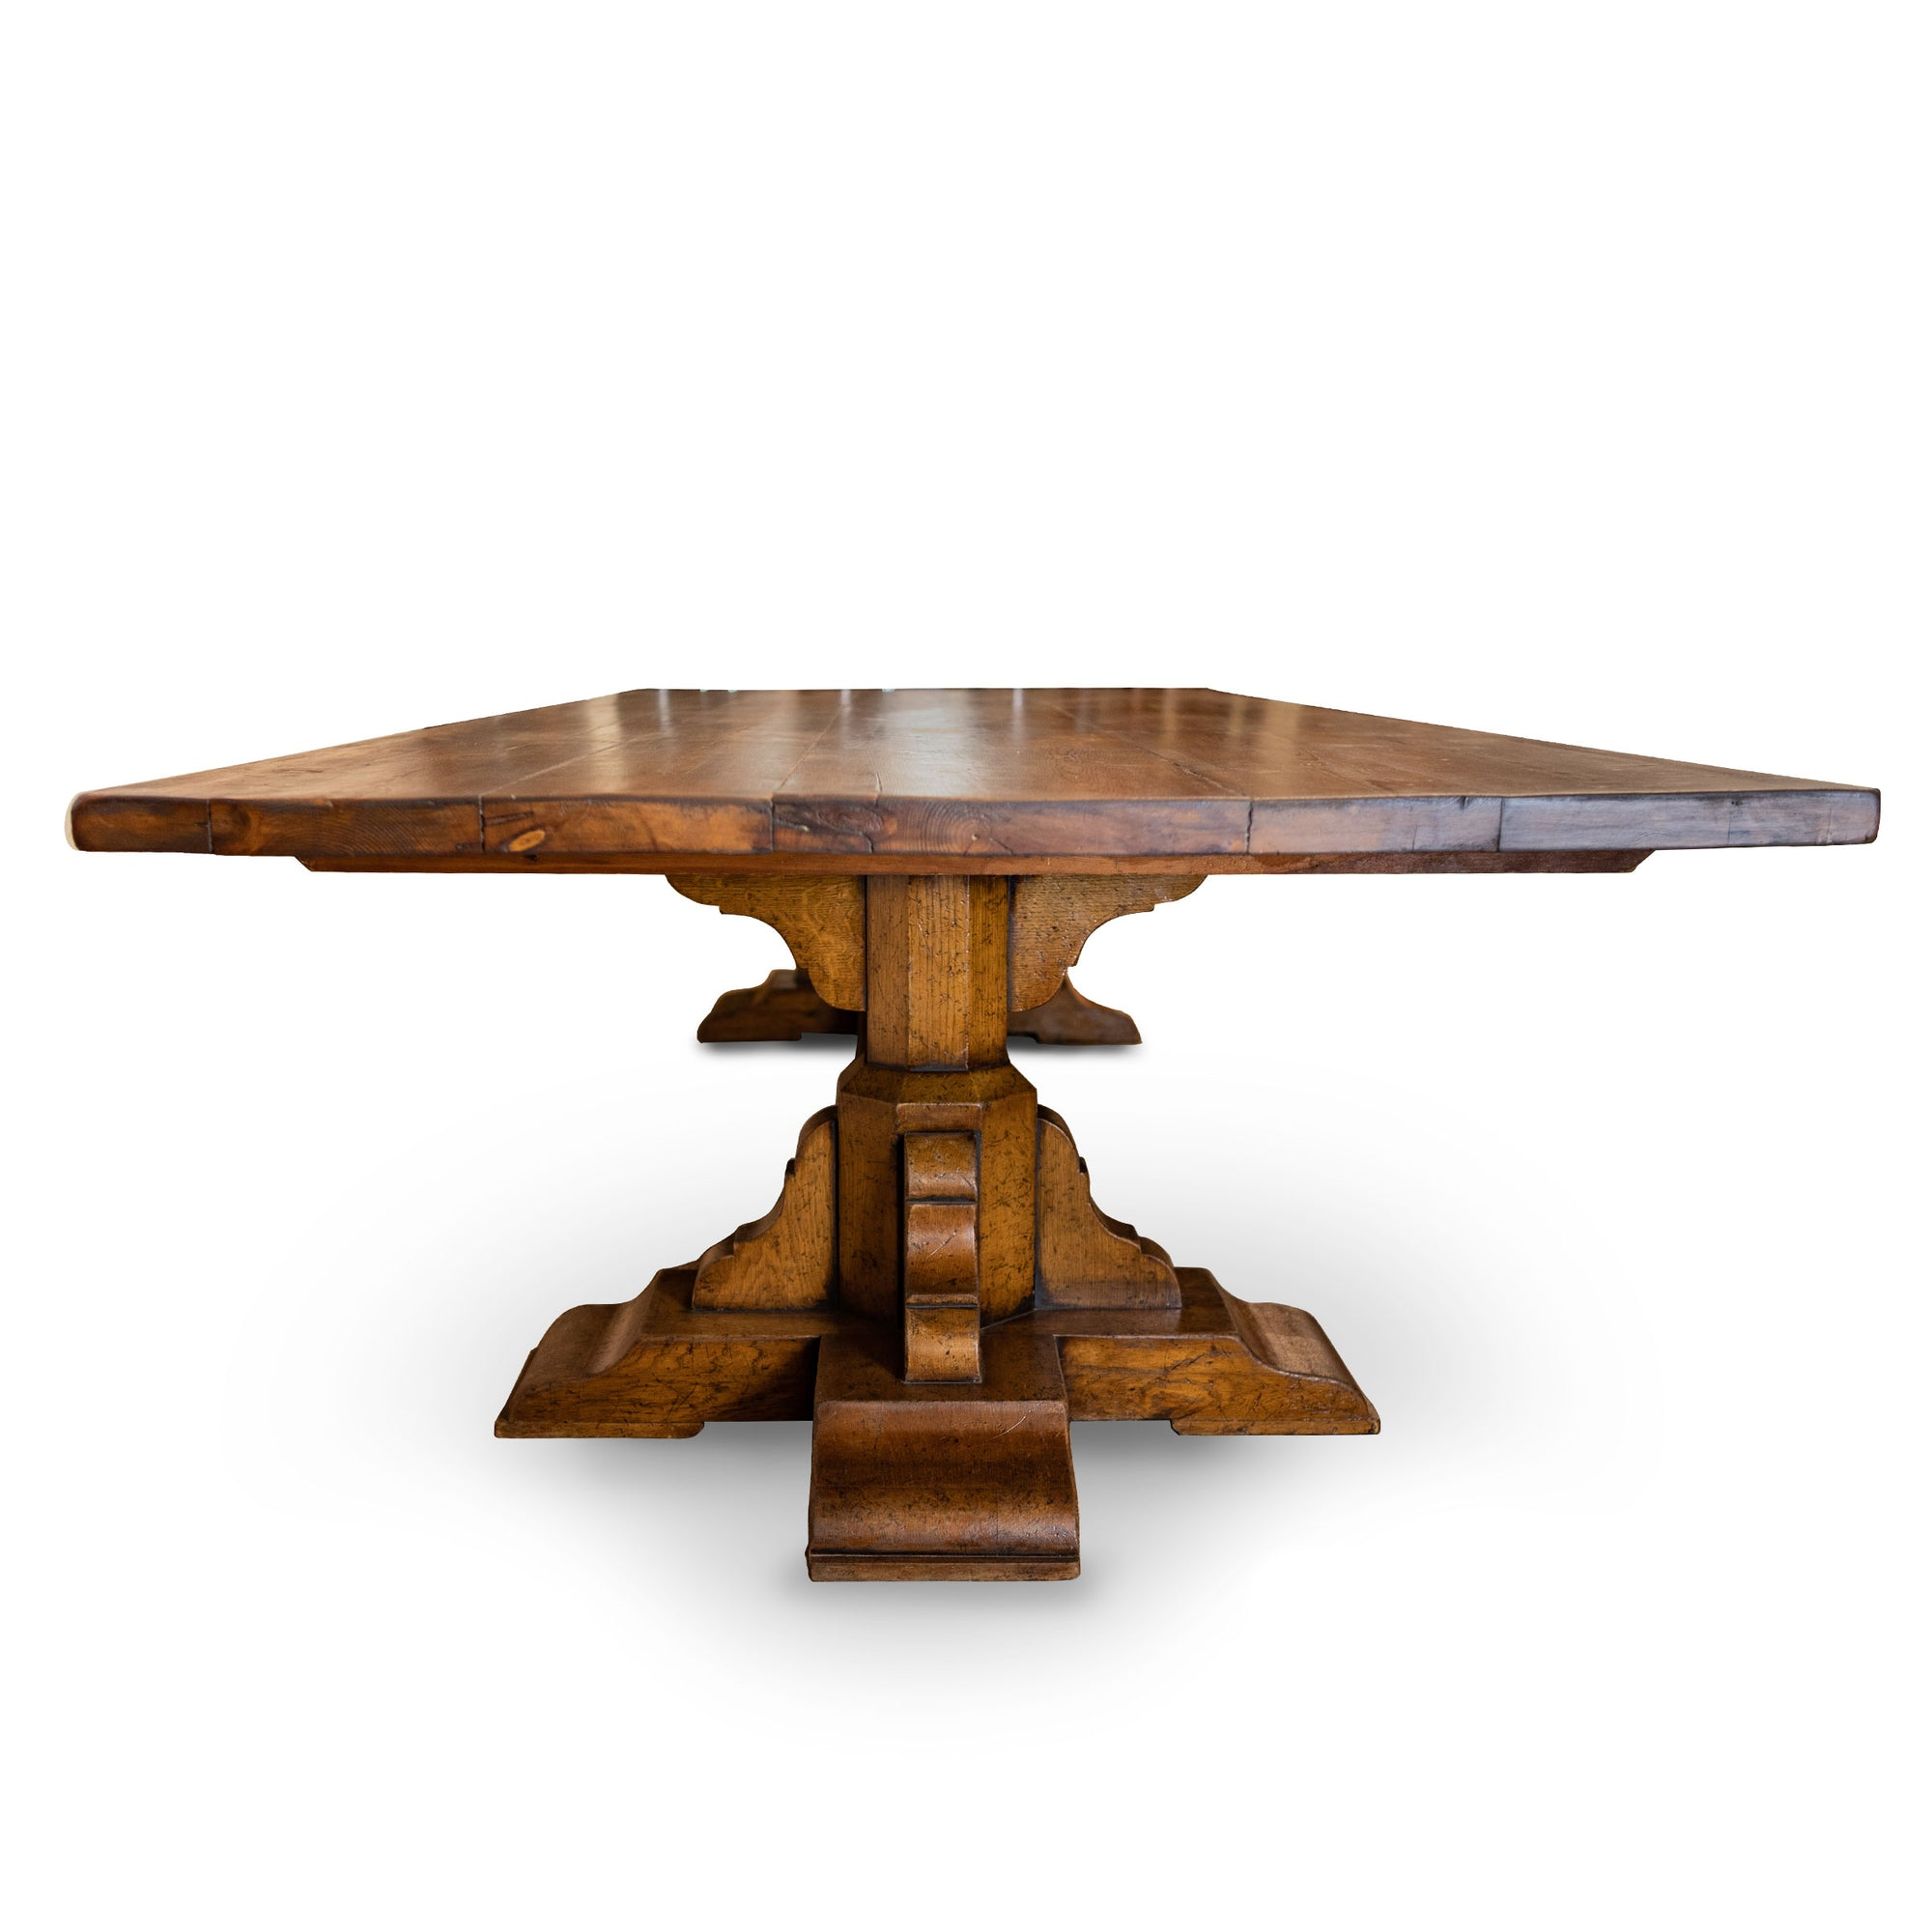 Antique banqueting table with pedestal base | The Architectural Forum